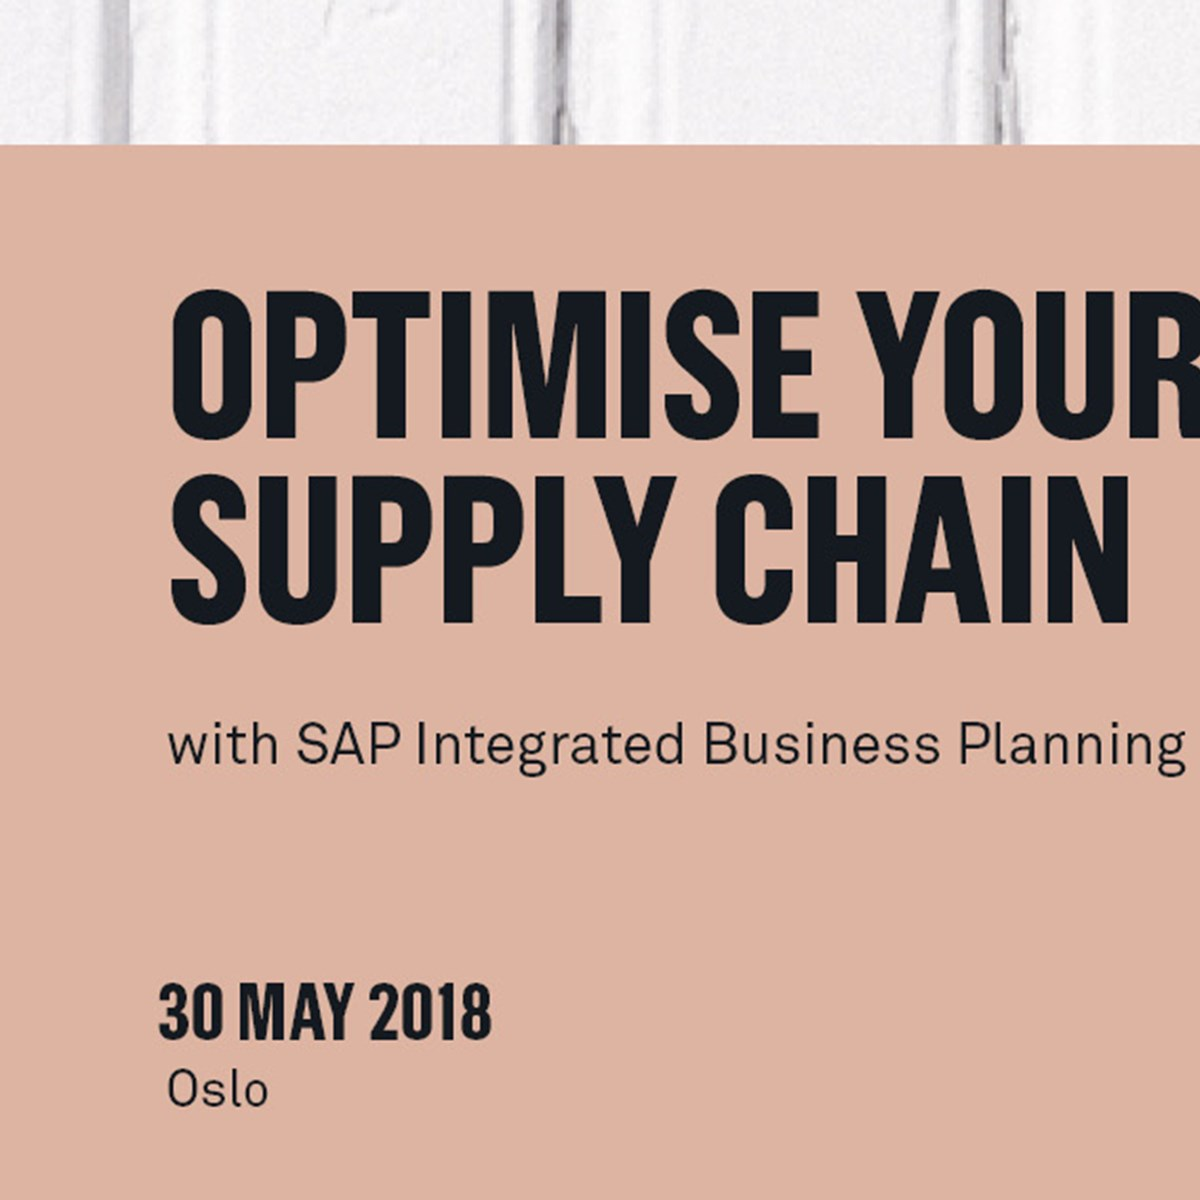 Optimise your supply chain with SAP Integrated Business Planning